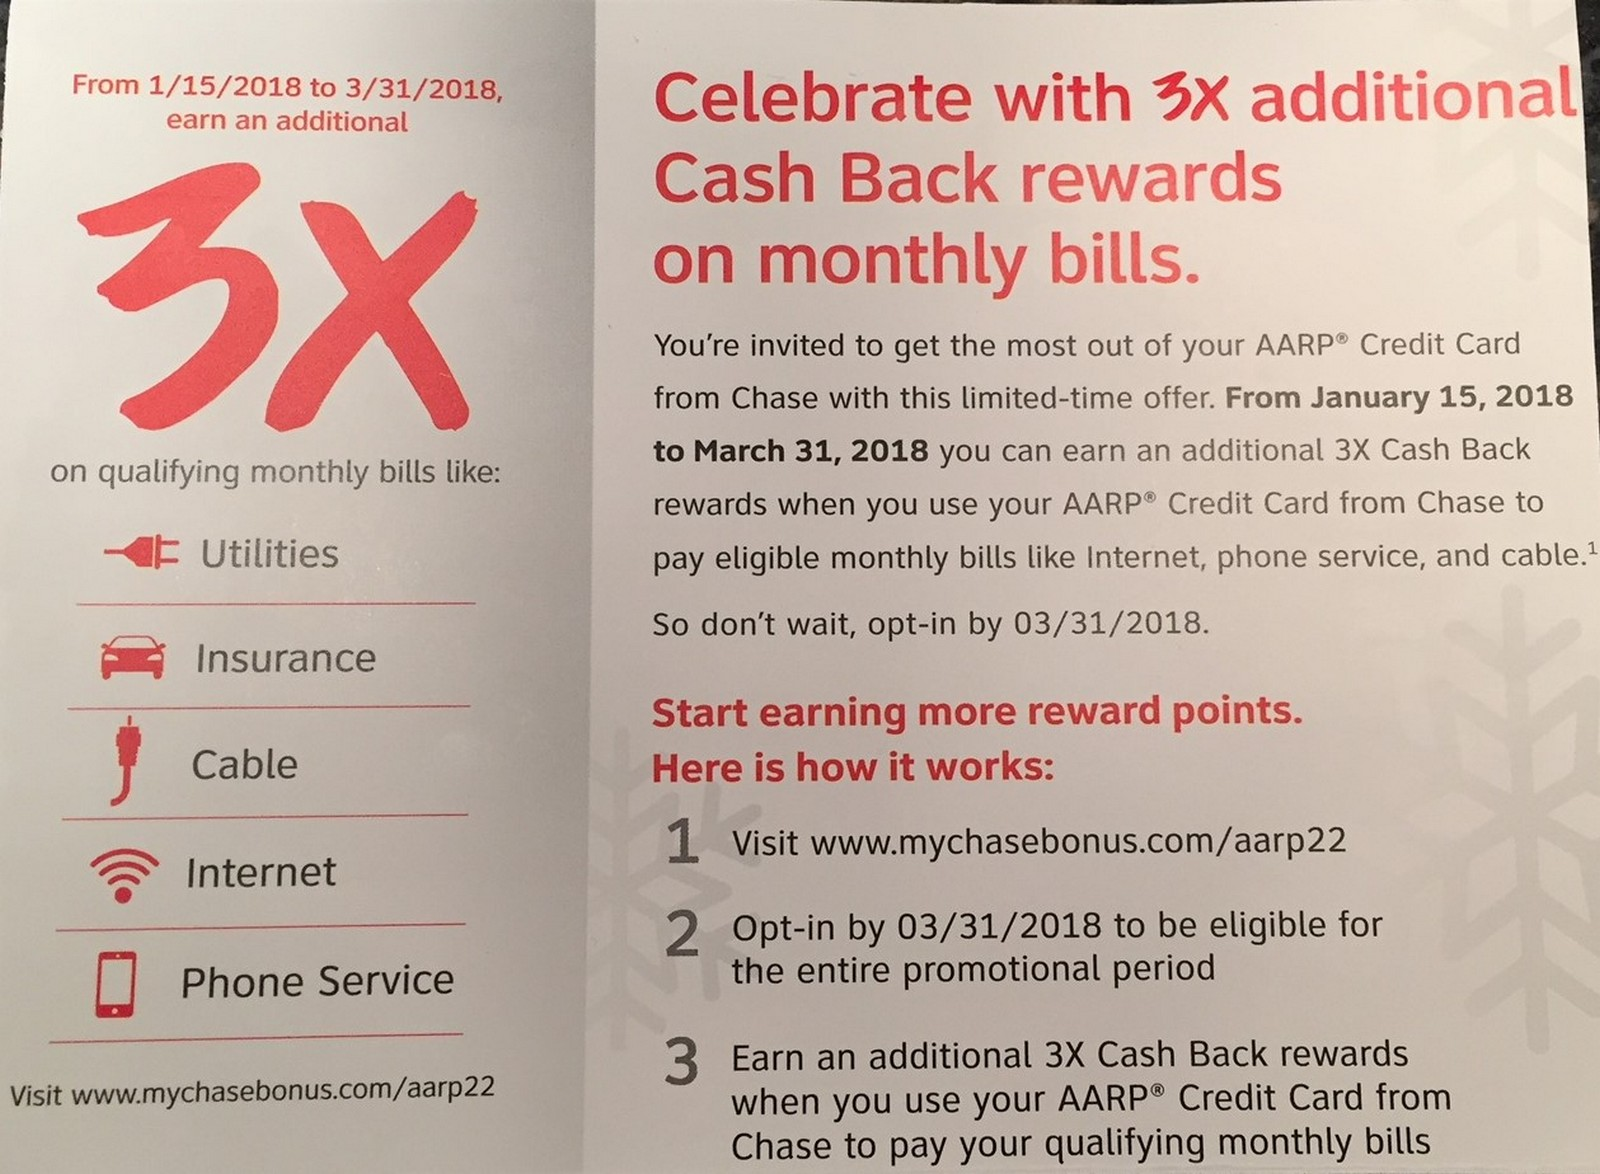 Chase Sends Out Chase AARP Spending Offers